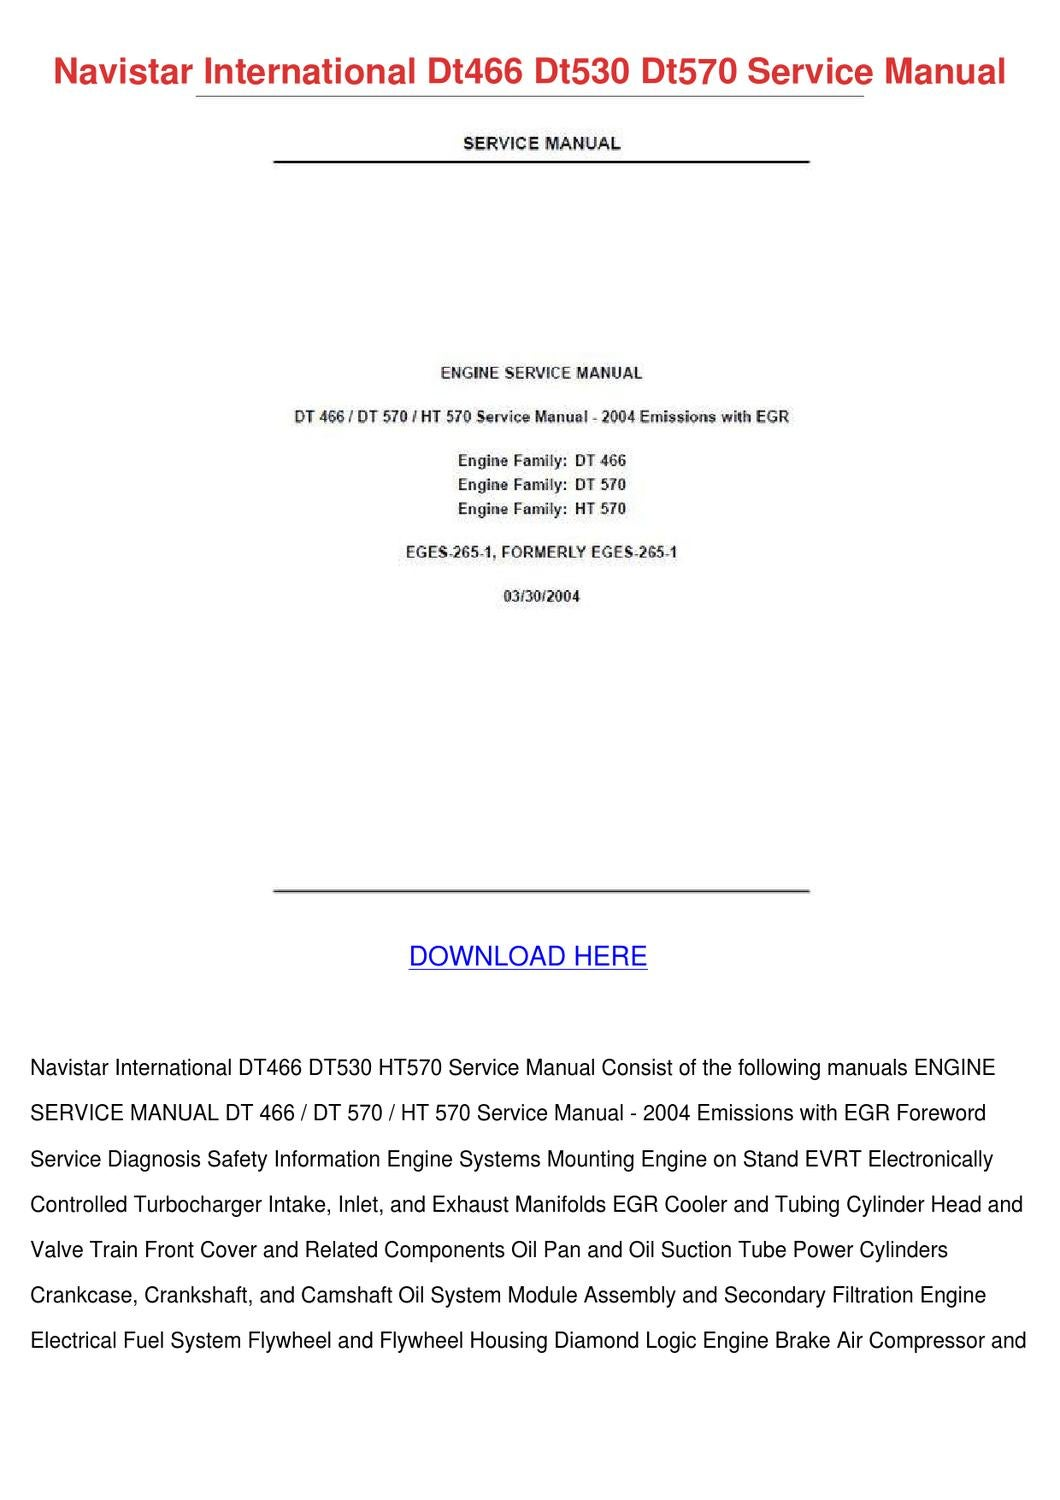 International Dt466 Service Manual Download Navistar Ht 570 Engine Diagram